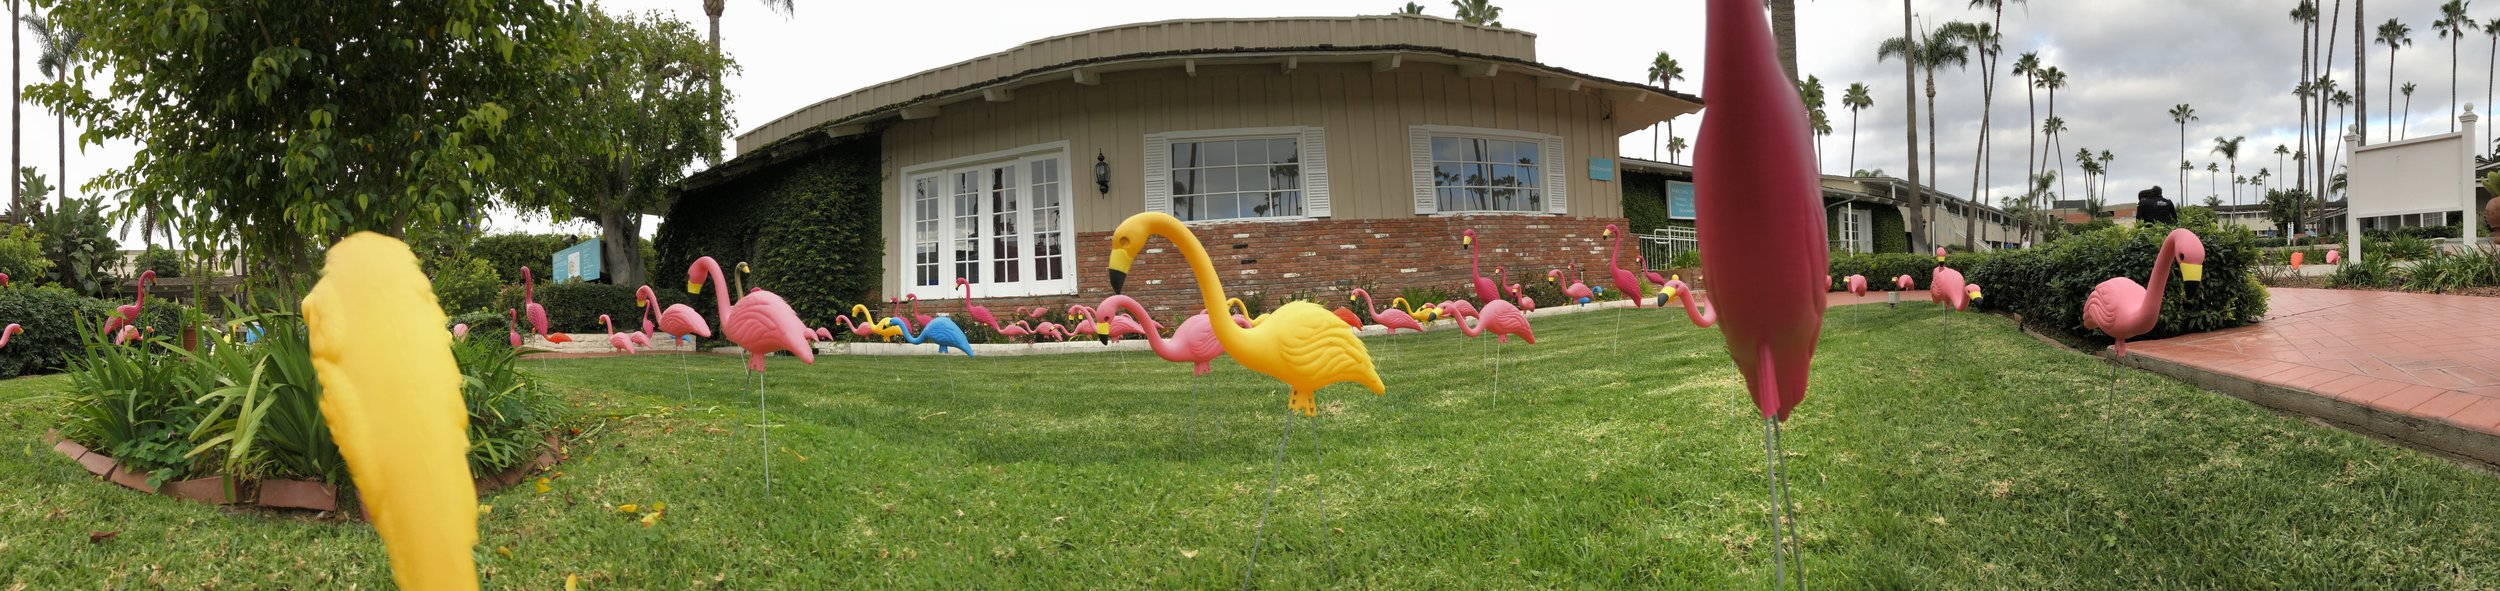 'Flamingo Lawn' relaxed 1950's Californian style Town and country Resort with cheeky touches.